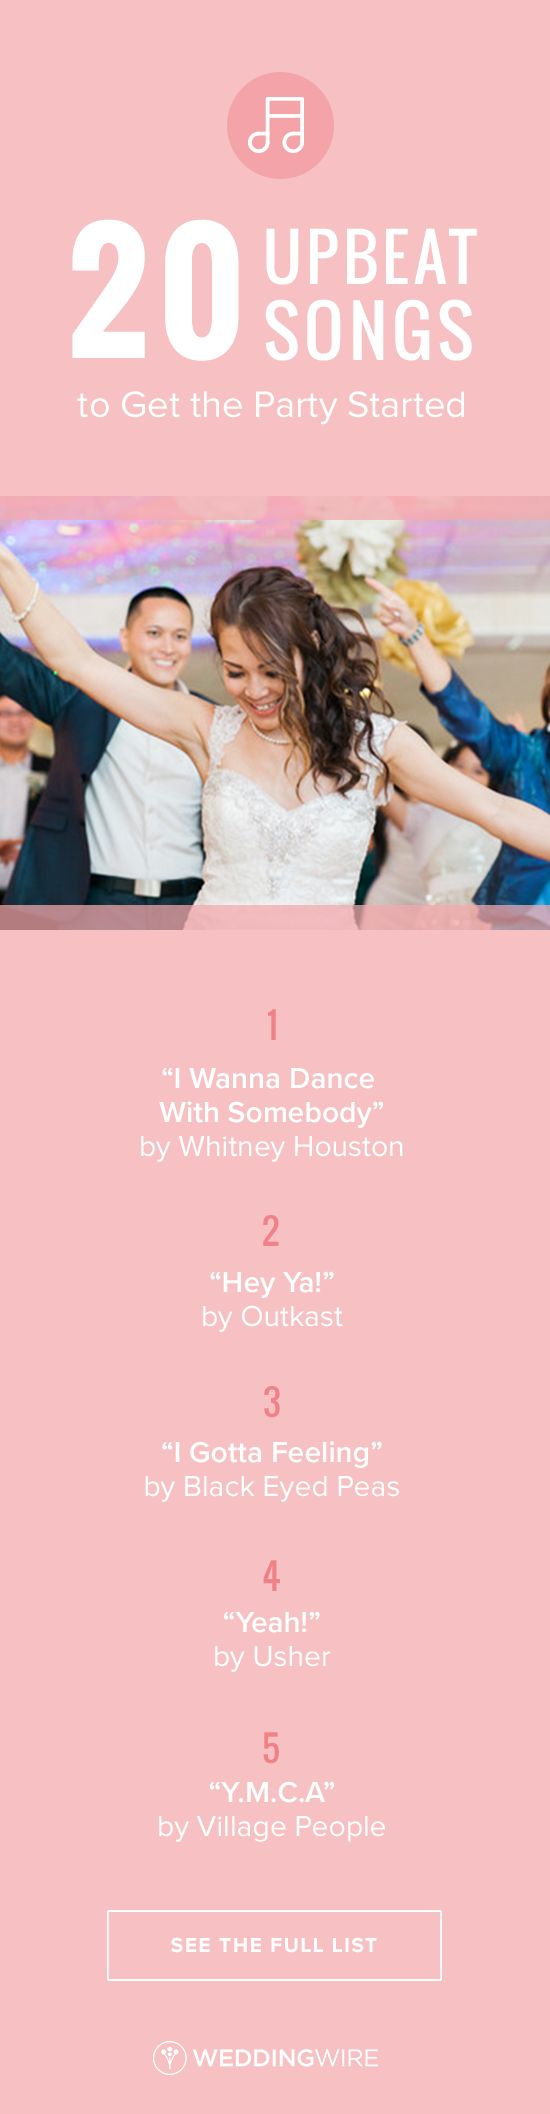 9 best images about Playlist on Pinterest | Songs, 90 and New years ...